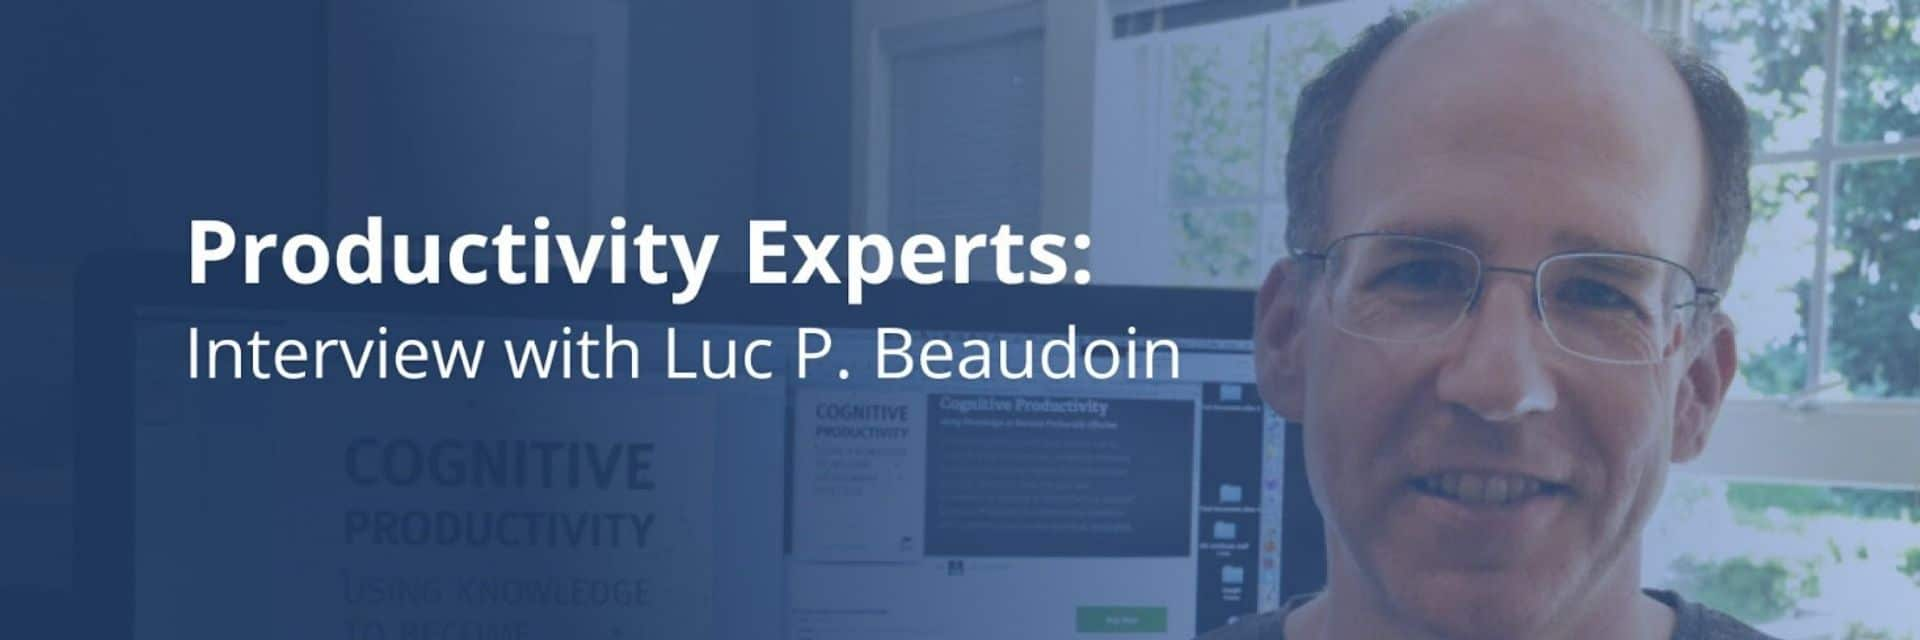 Cognitive productivity expert, Luc P. Beaudoin